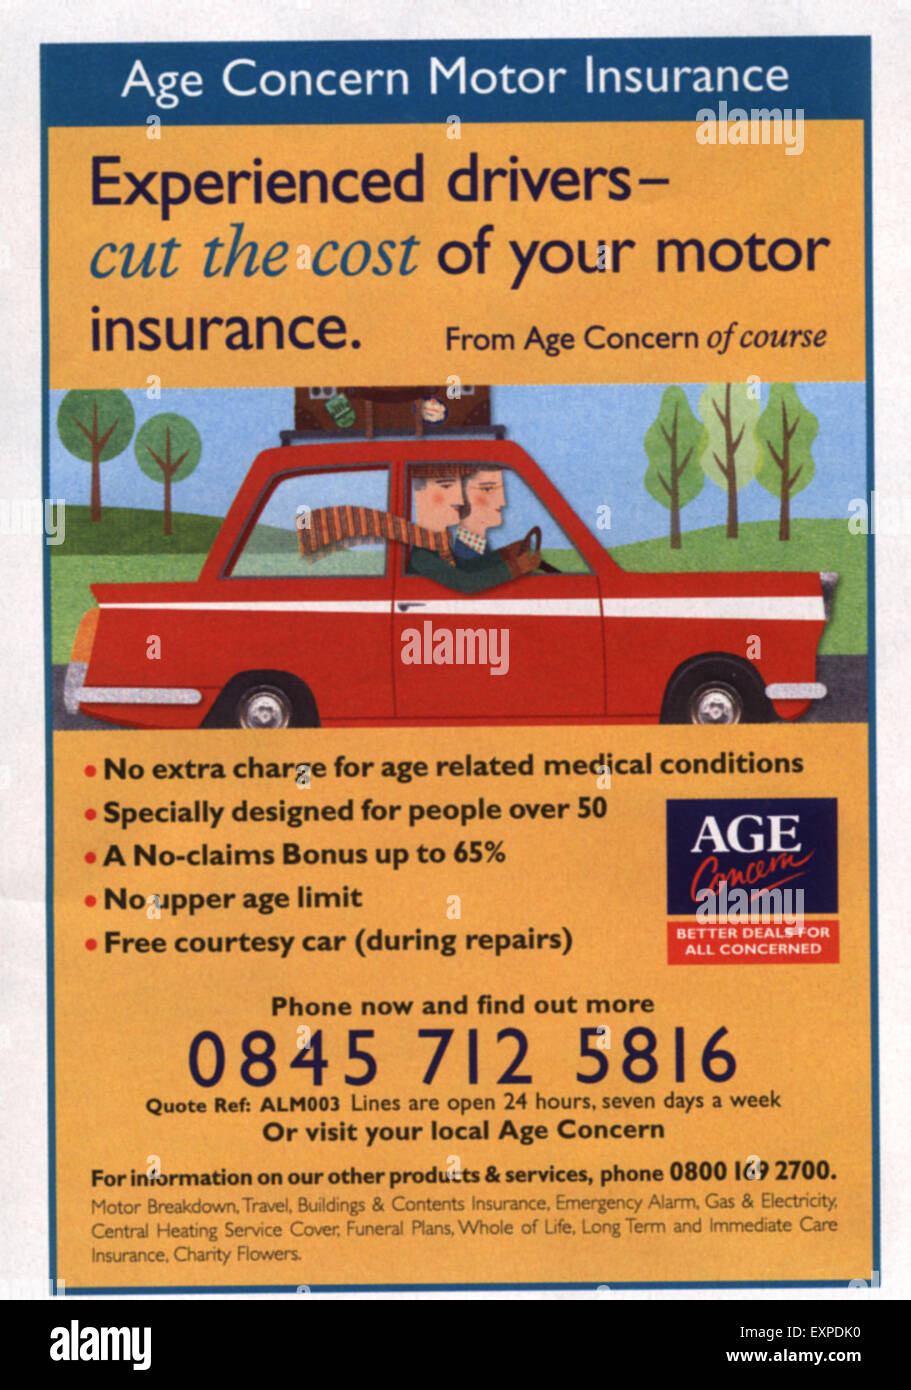 2000s UK Age Concern Magazine Advert - Stock Image